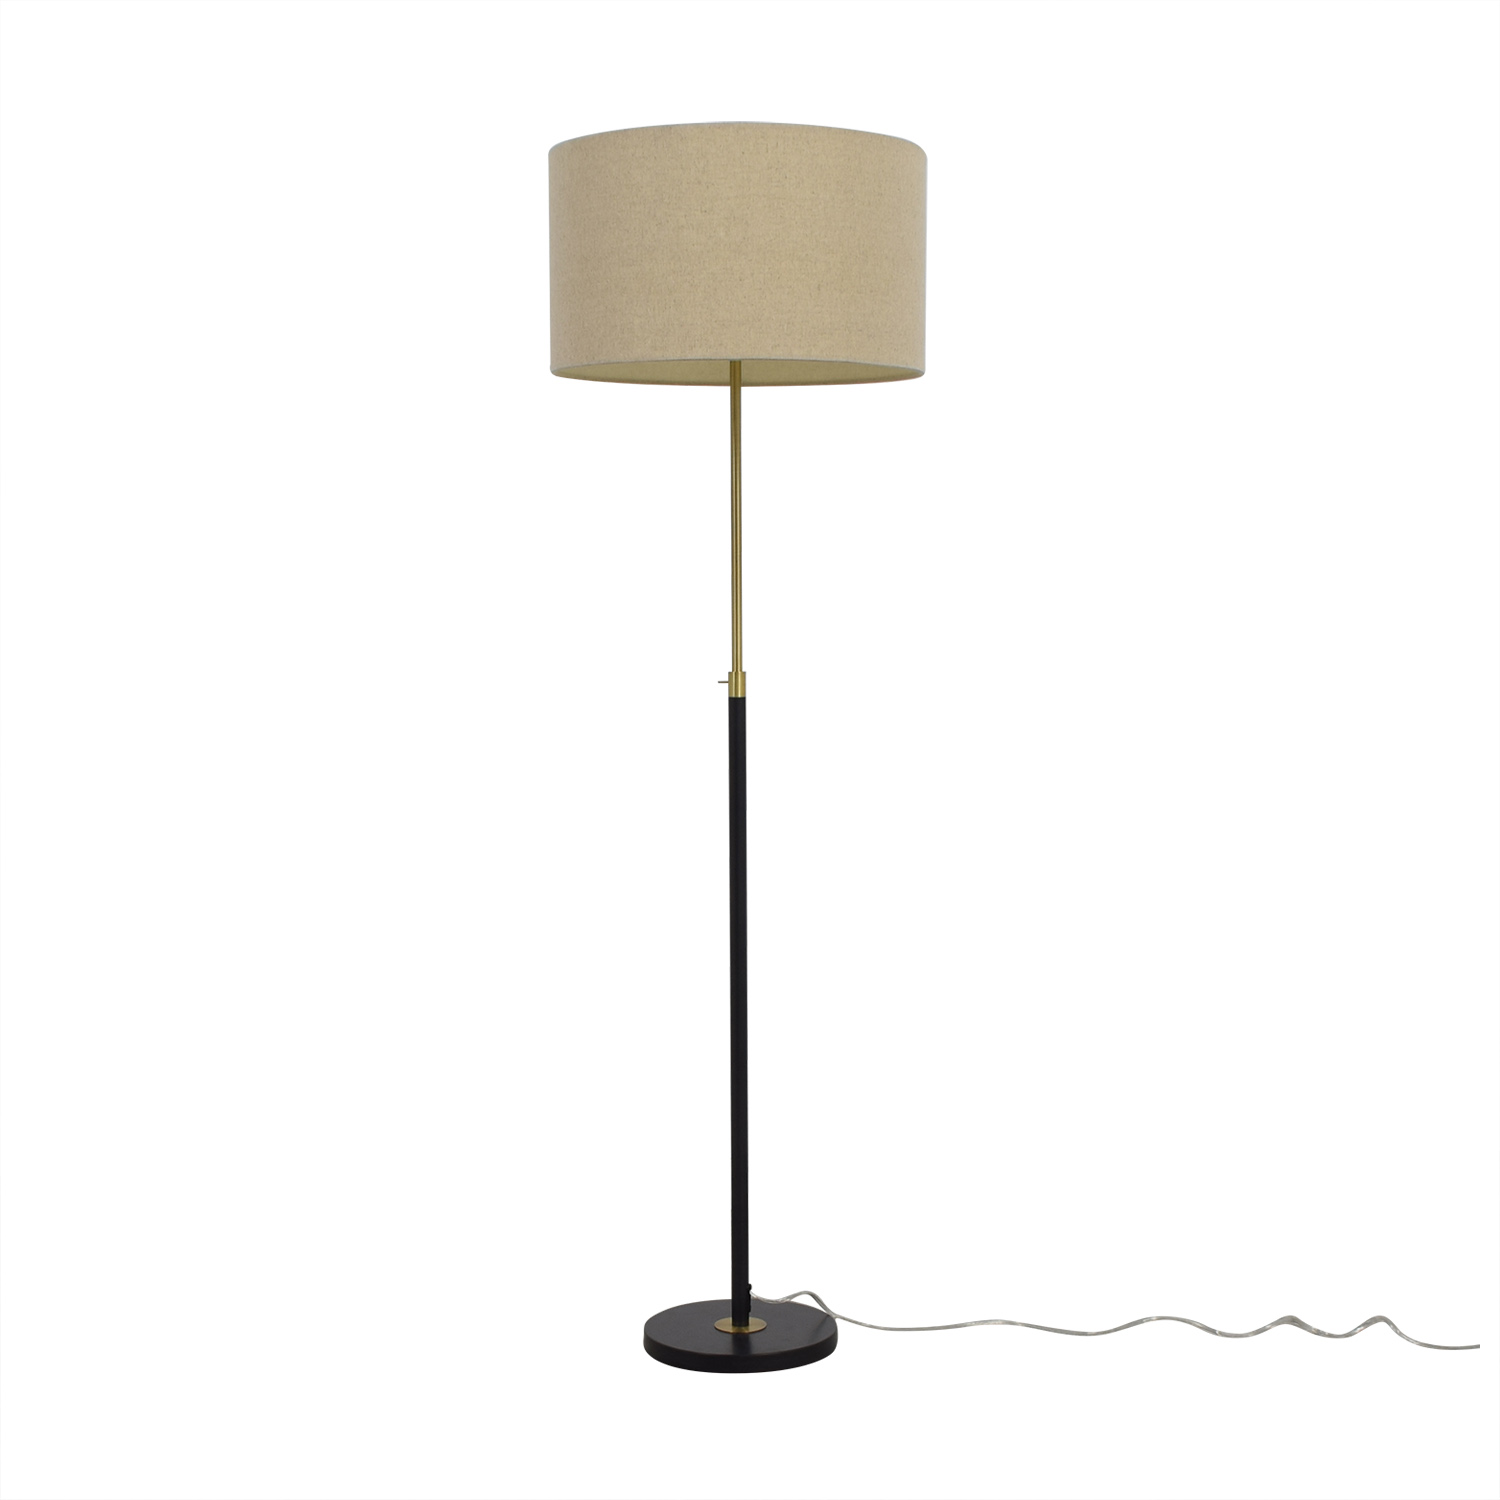 West Elm West Elm Telescoping Floor Lamp for sale